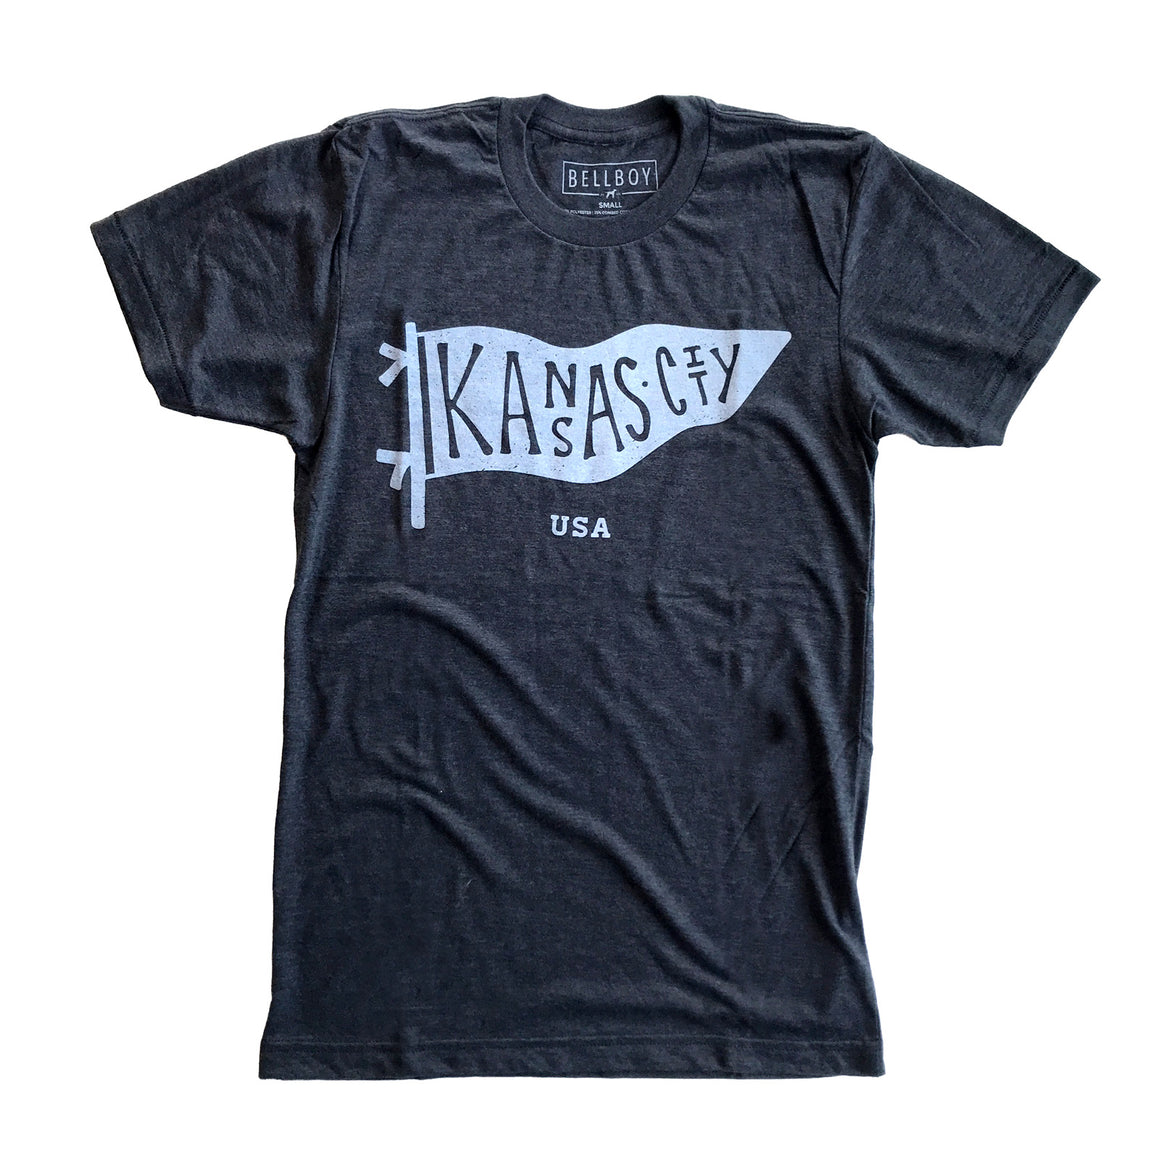 BELLBOY | KC PENNANT CHARCOAL